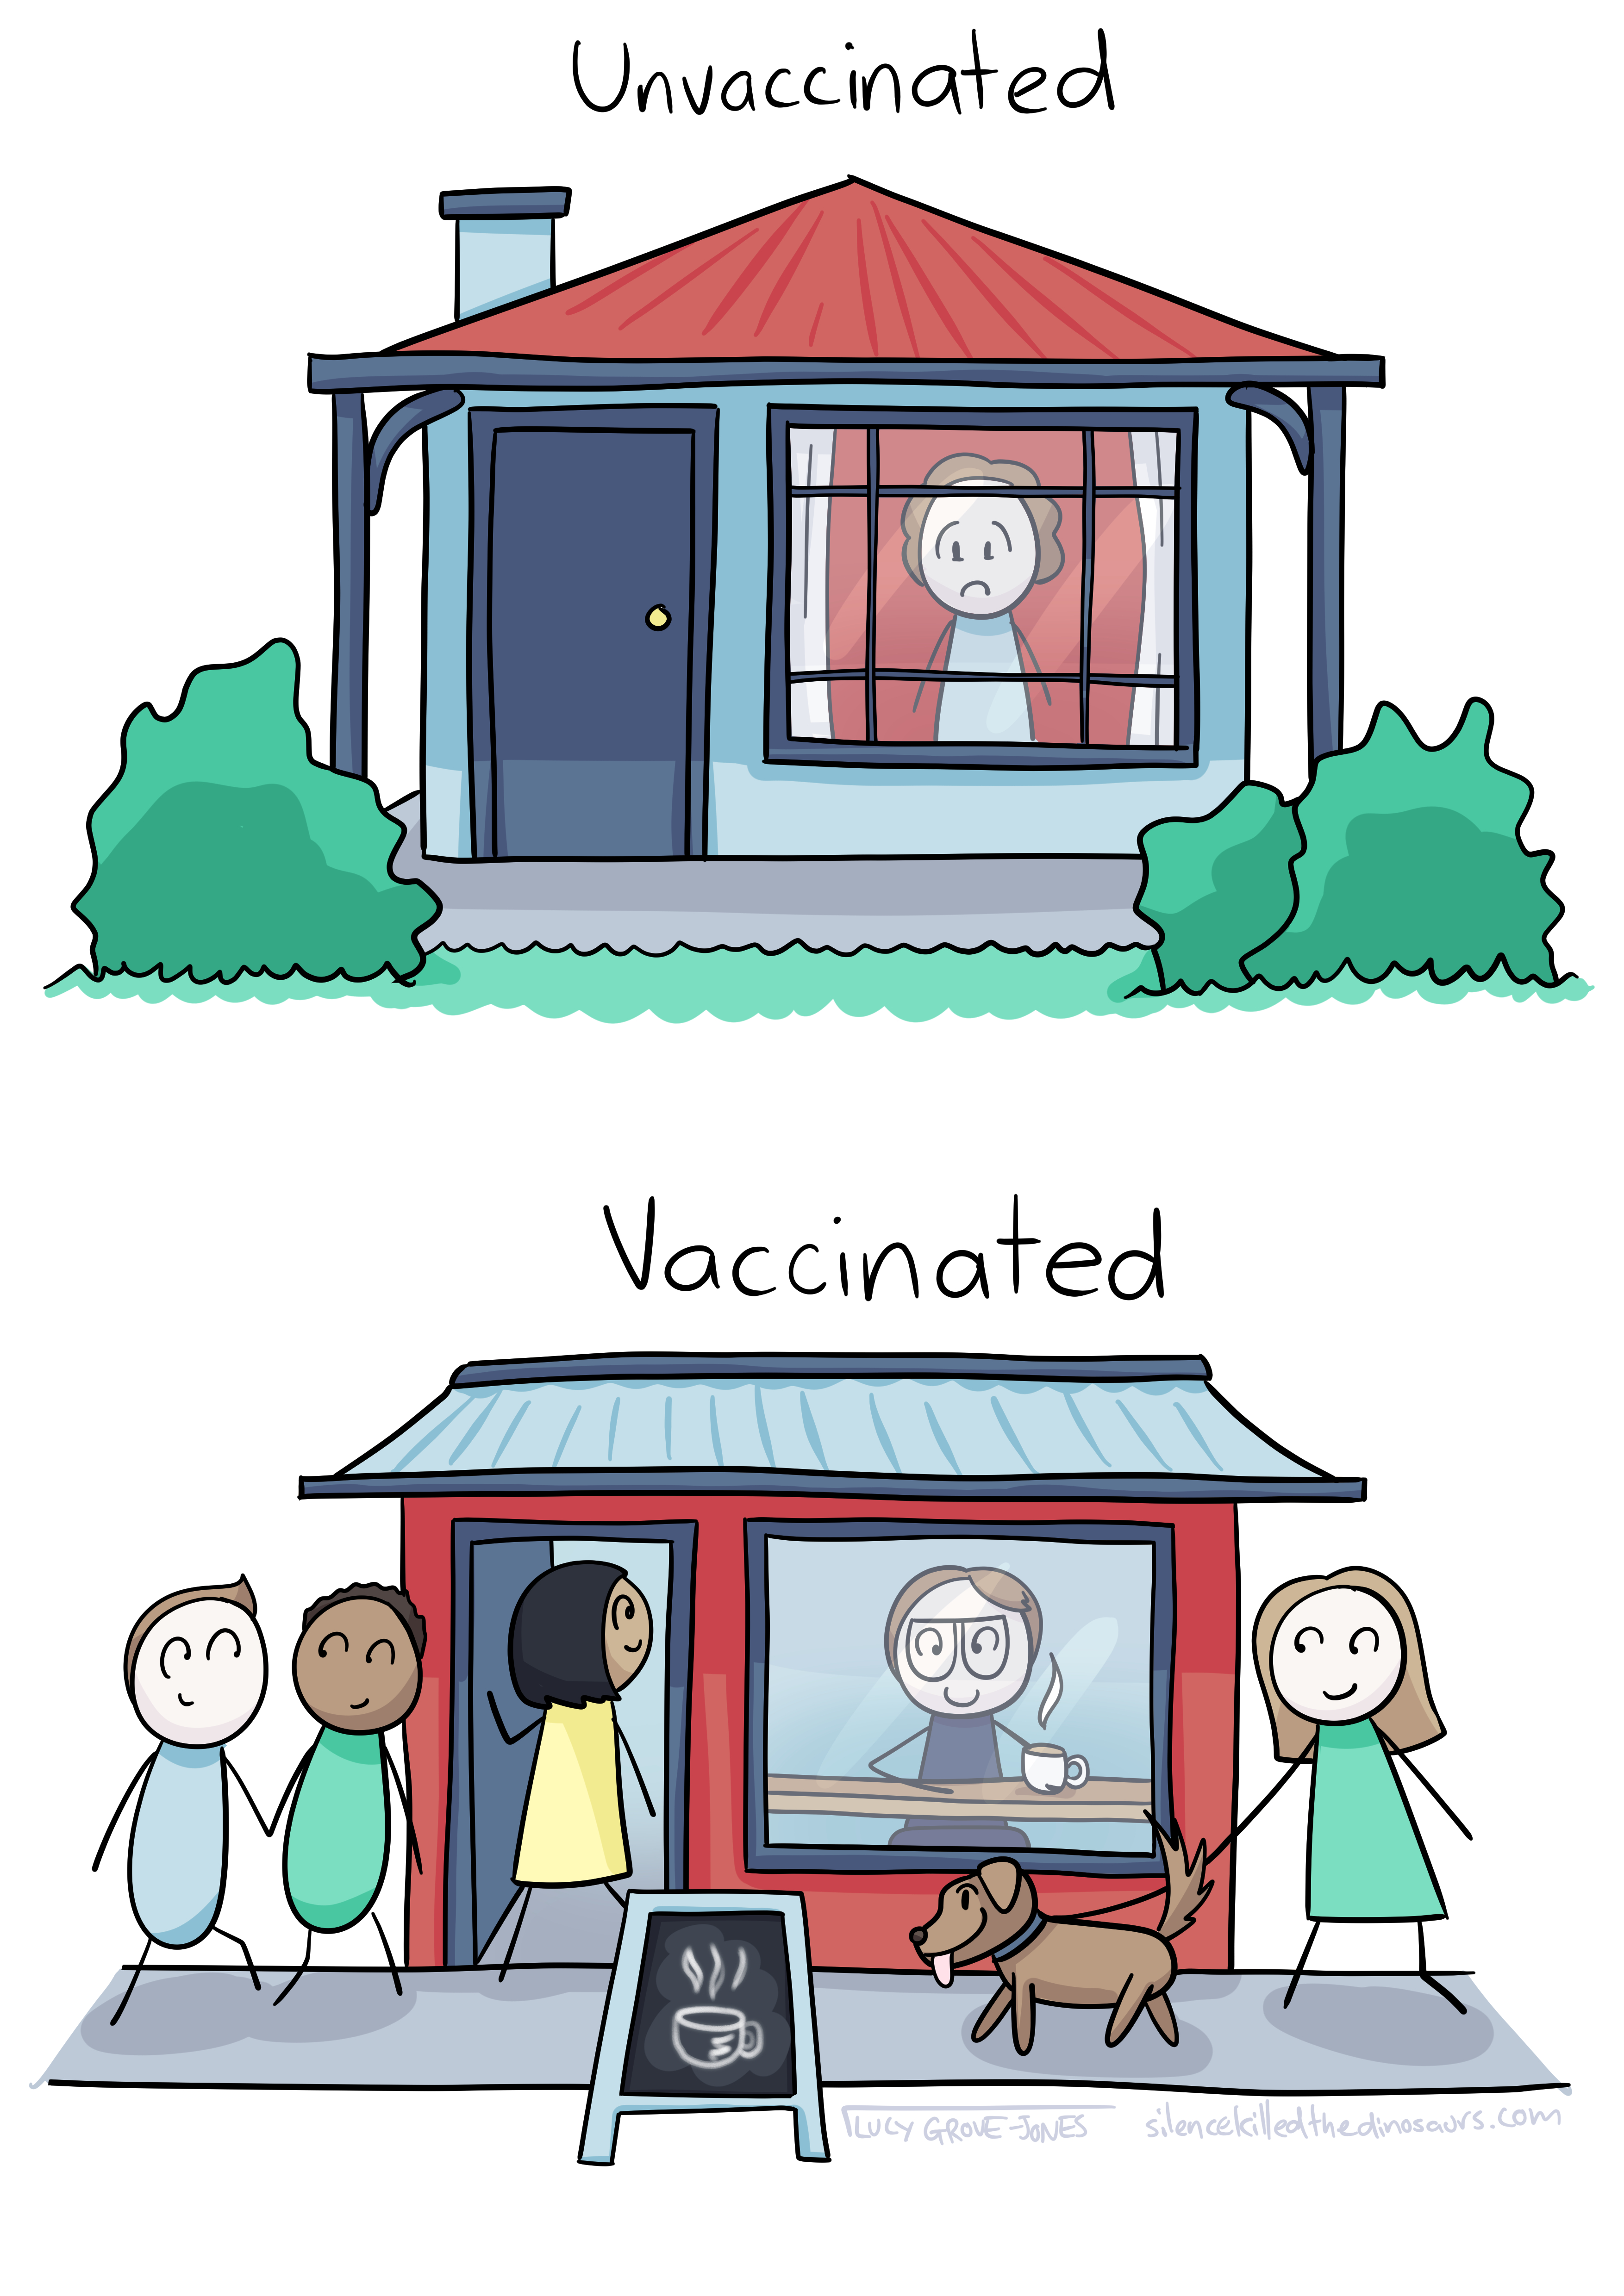 2 panels. Unvaccinated: a lone person looking out the window of a home. They are sad. Vaccinated: I sit in the window of a bustling cafe while drinking coffee. Everyone is happy.